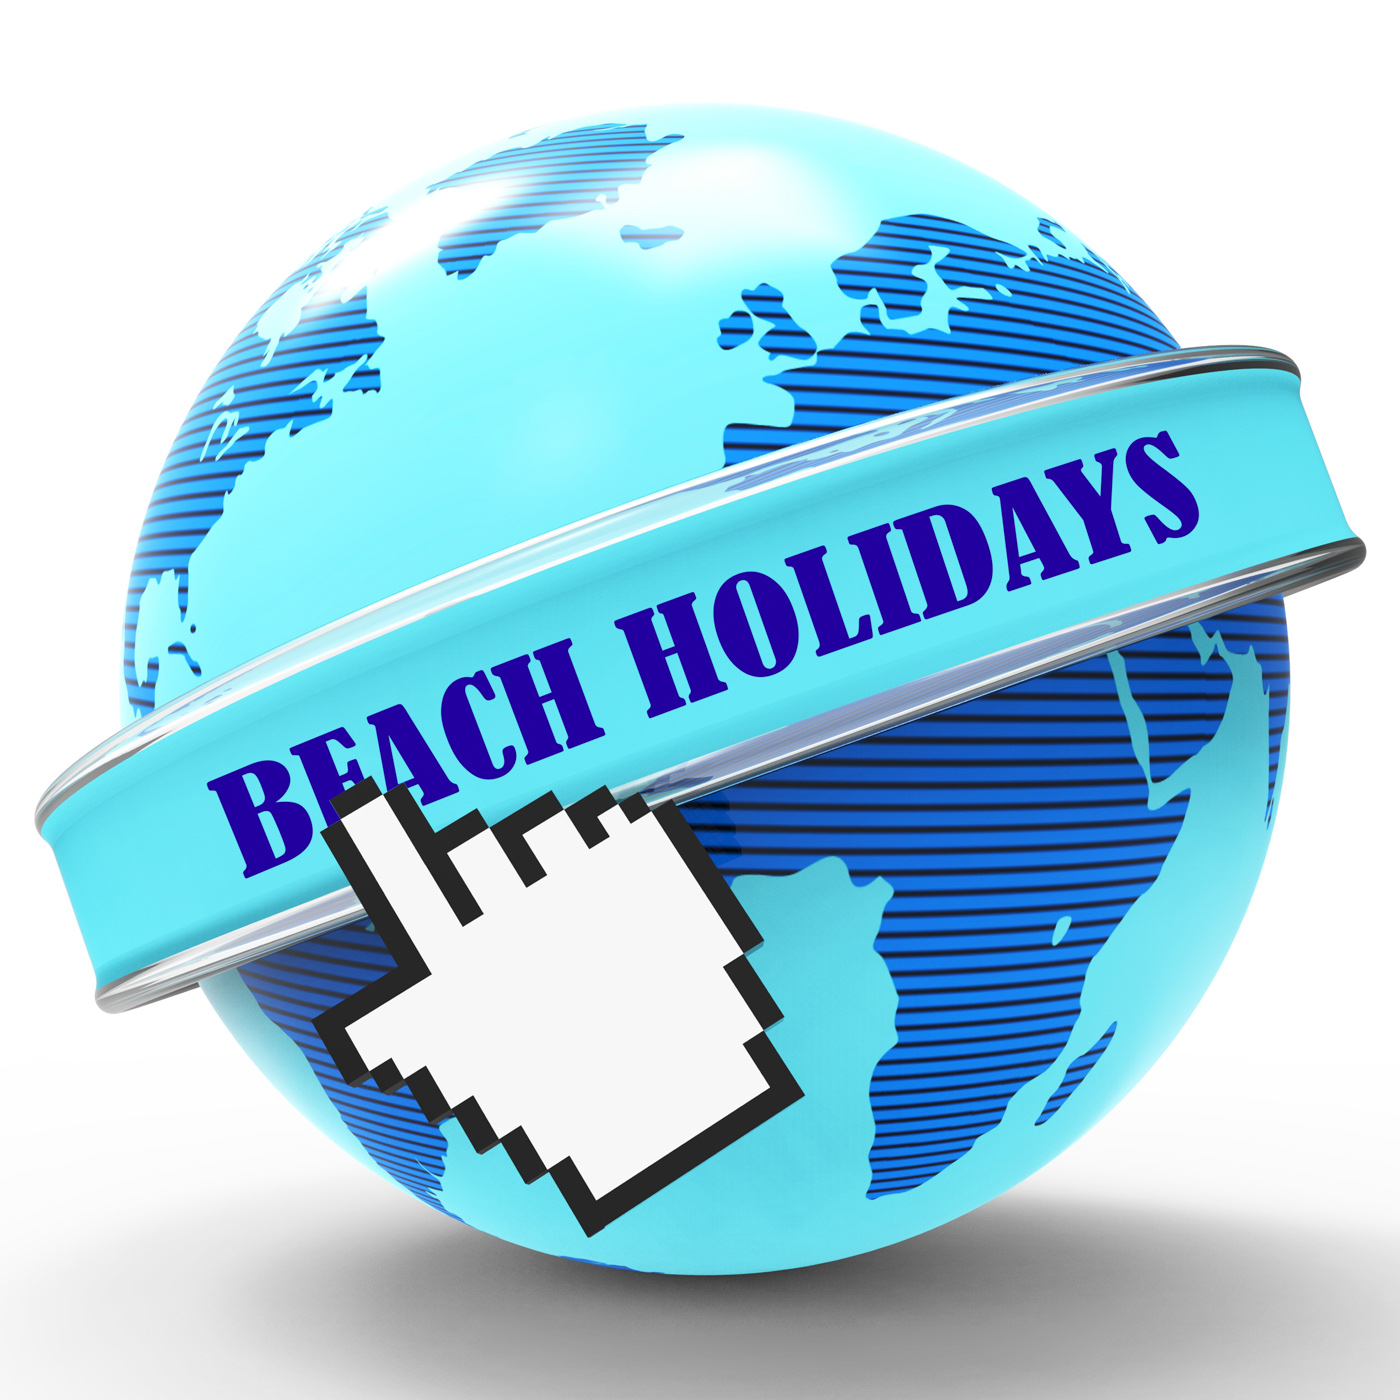 Beach Holidays Shows Vacation Seaside And Coasts, Beach, Seafront, Vacationing, Vacational, HQ Photo